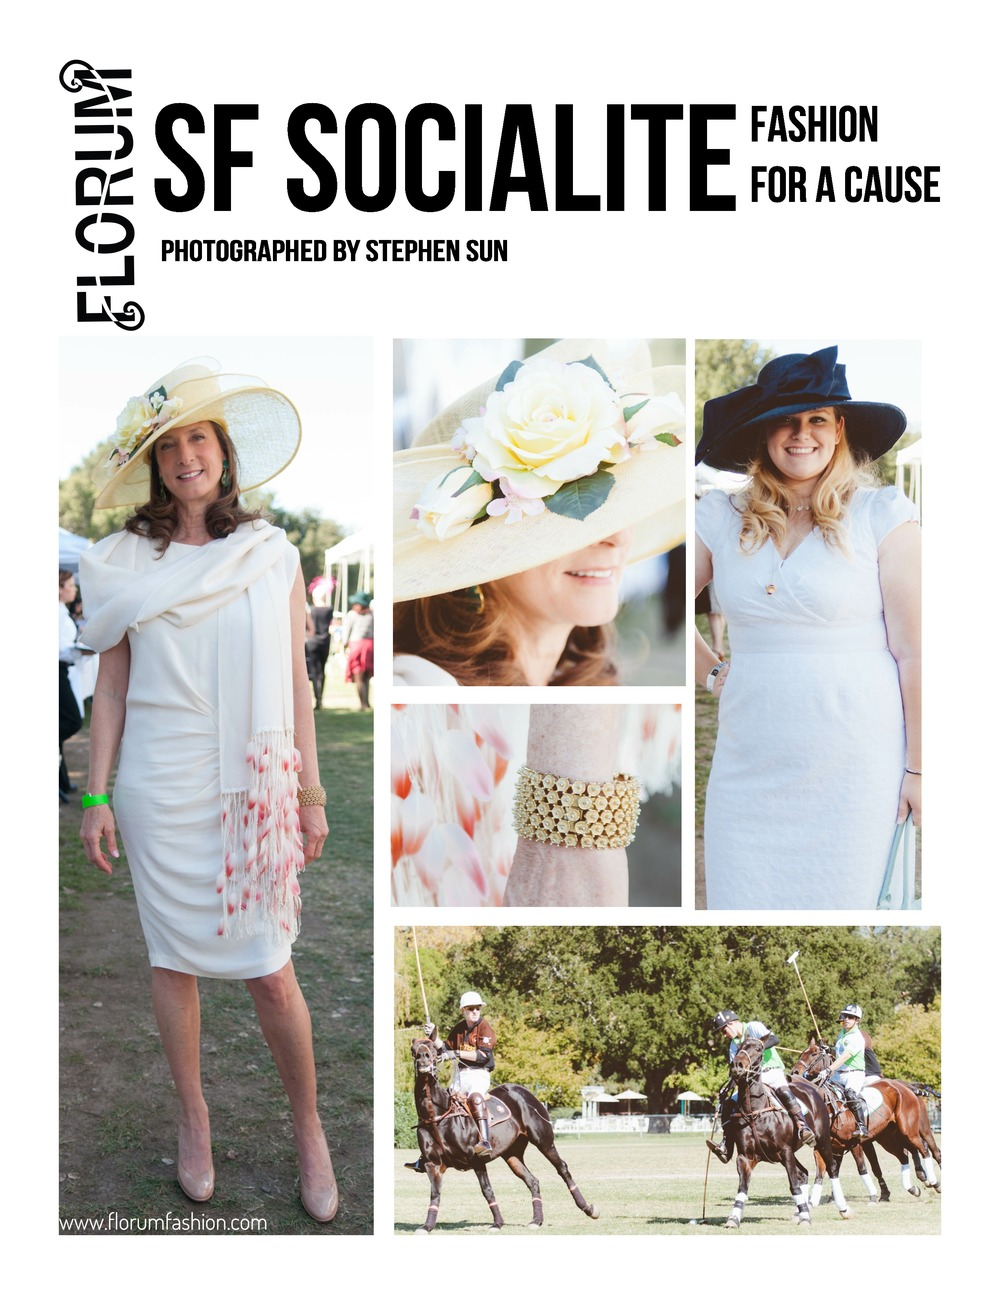 Polo for Lyme benefiting the Bay Area Lyme Foundation / Photographed by Stephen Sun